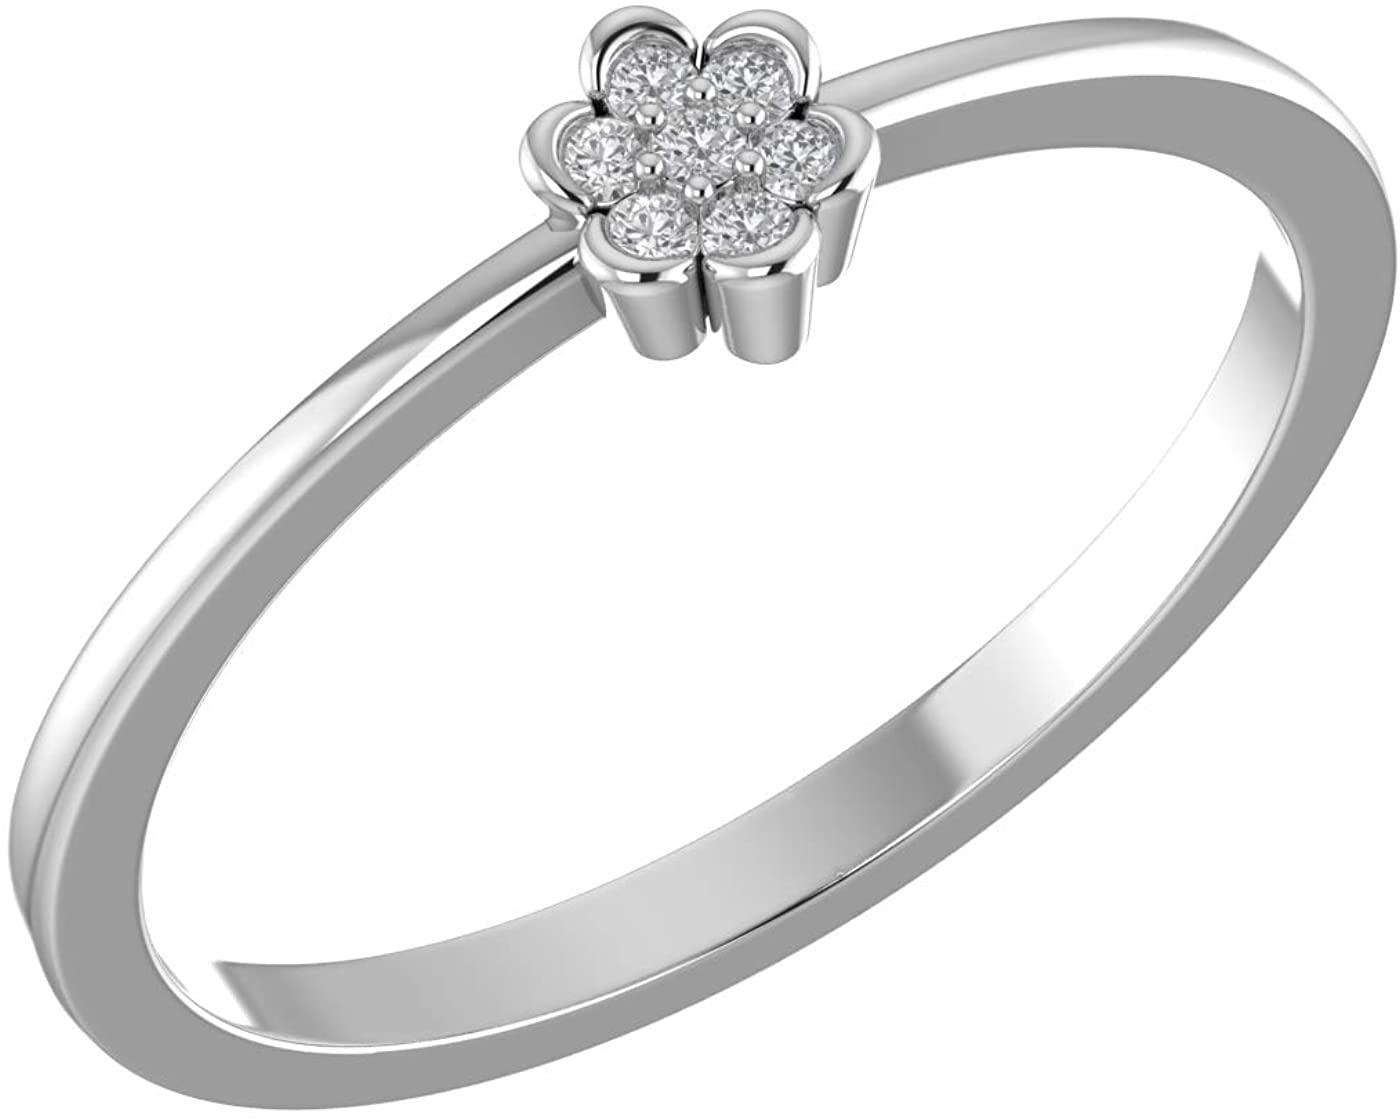 0.05 Ct Natural Diamond Cluster Ring 14K Yellow Gold Over 925 Sterling Silver